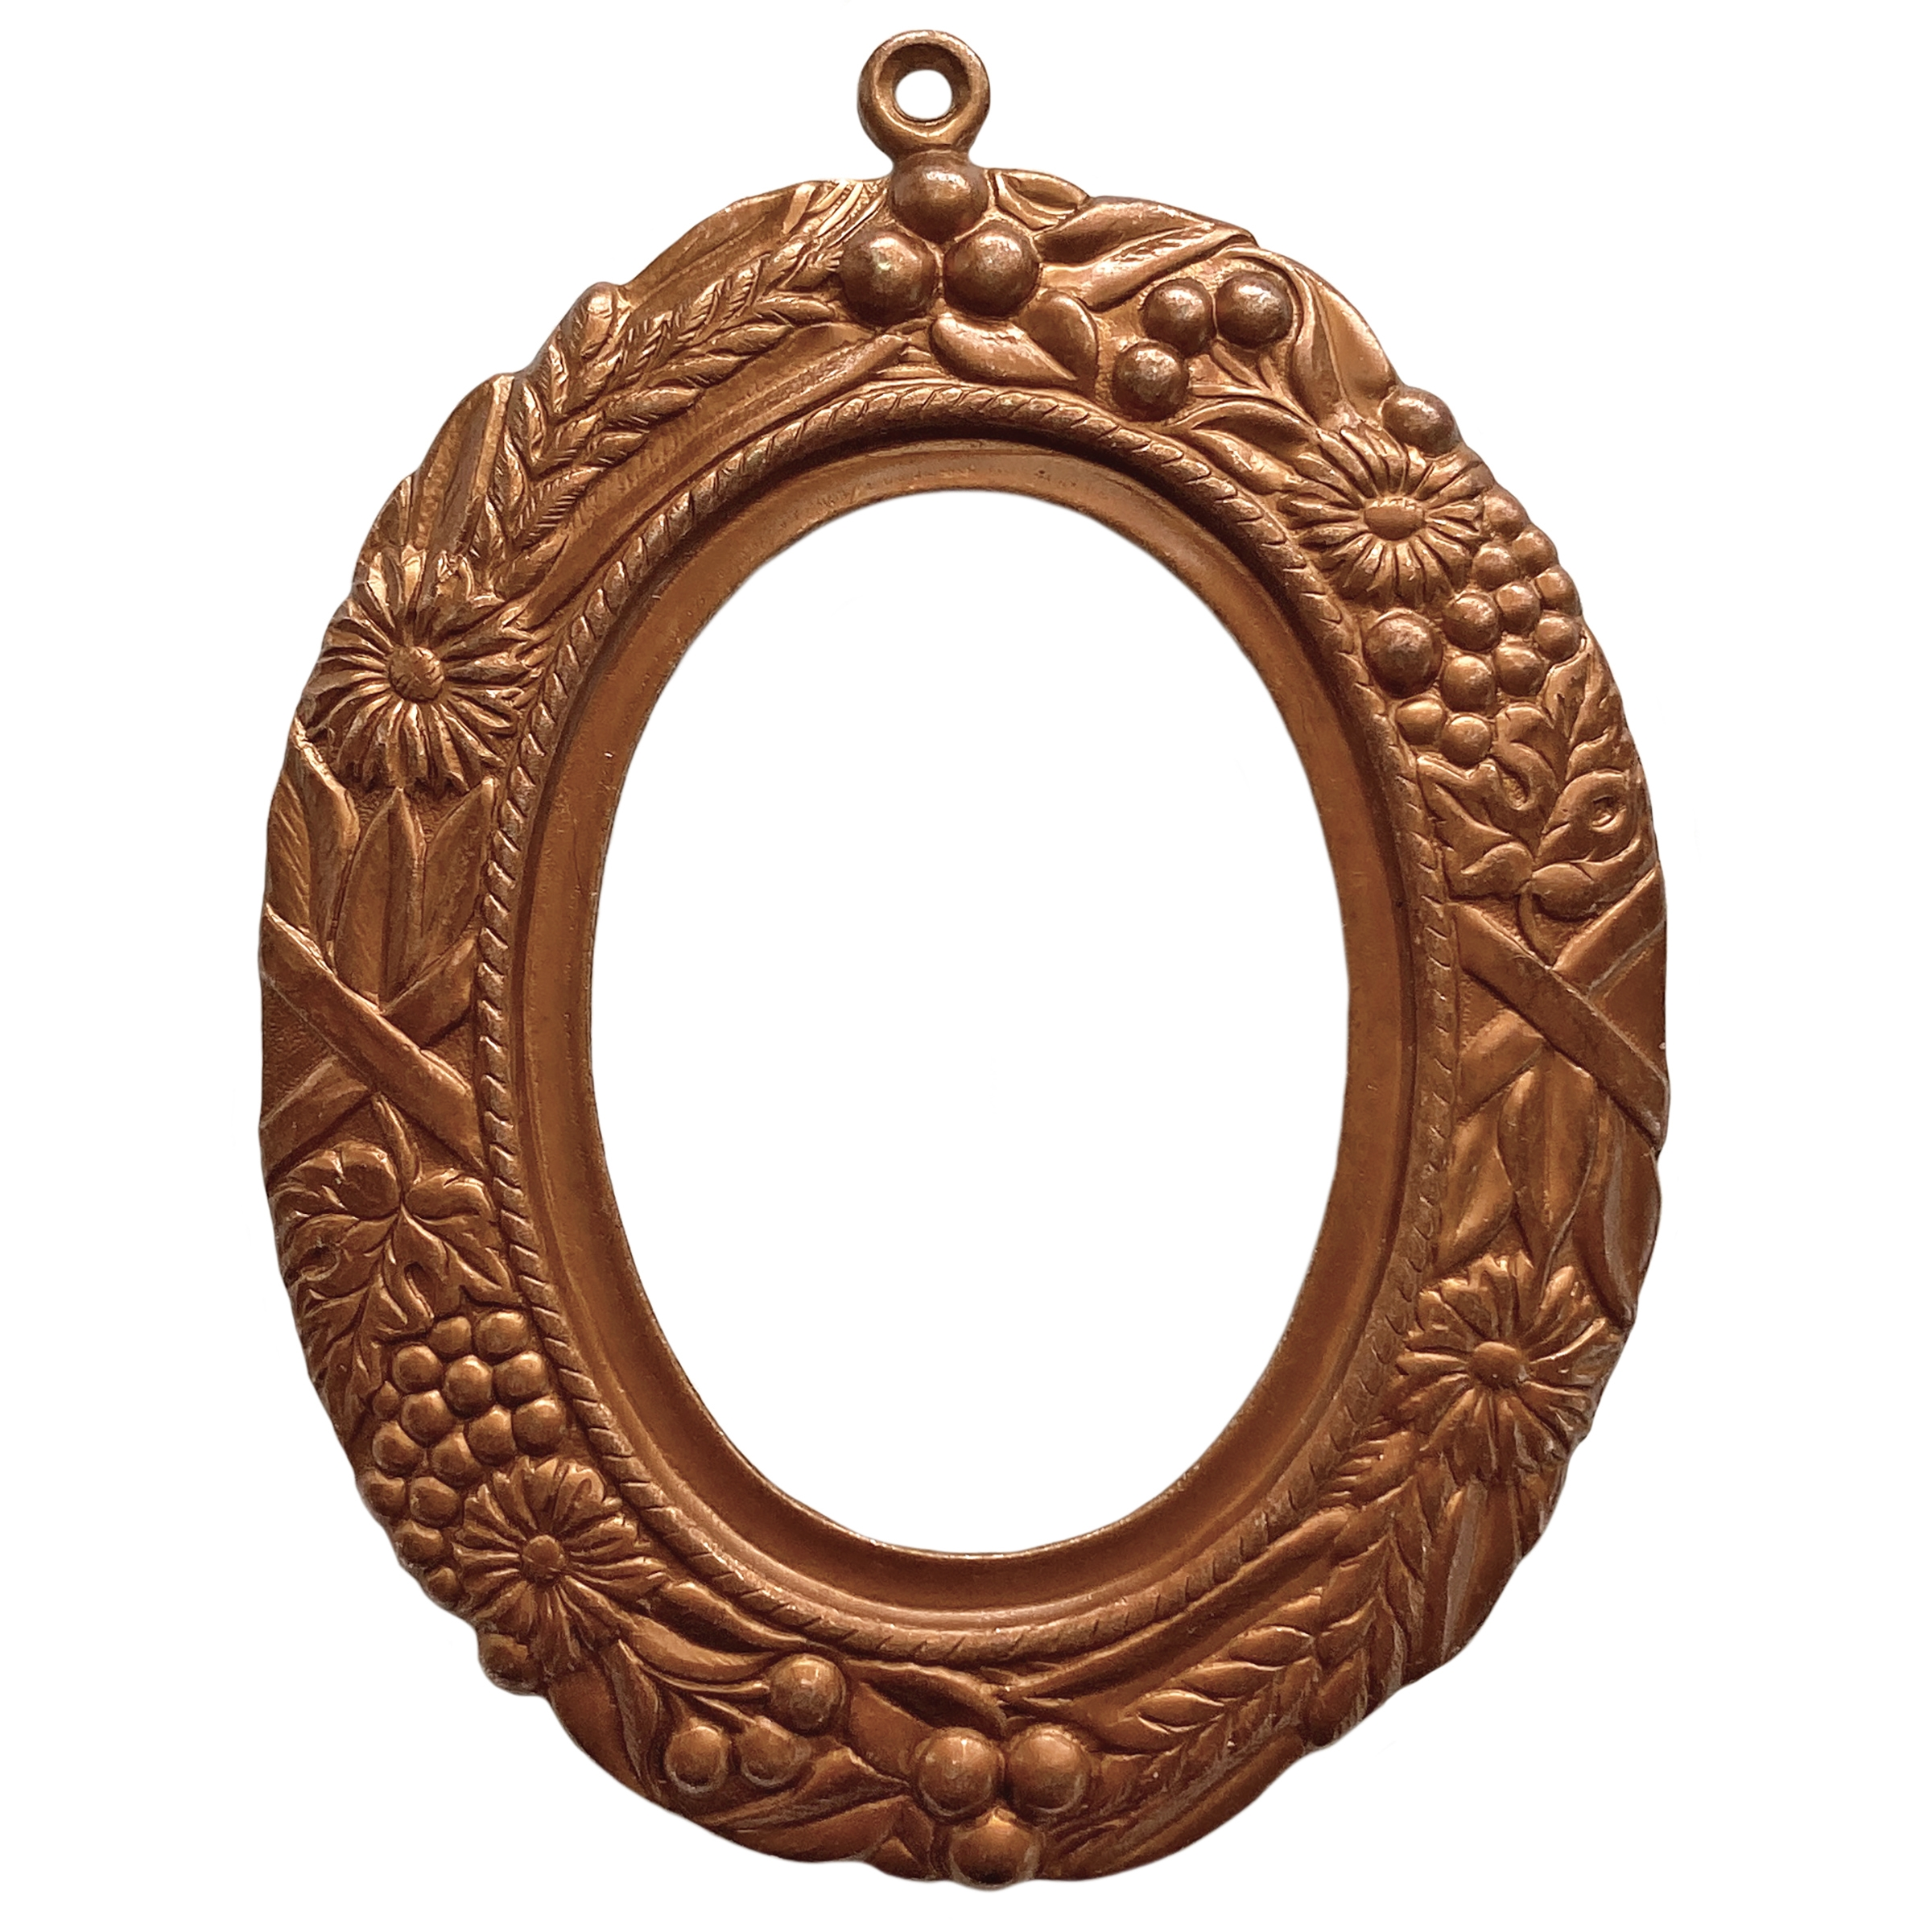 backless floral wreath jewelry mount, gingerbread brass, mount, pendant, backless mount, pendant mount, antique copper, jewelry mount, floral design, floral border mount, 40x30mm mount, jewelry making, jewelry supplies, stamping, B'sue, 01690